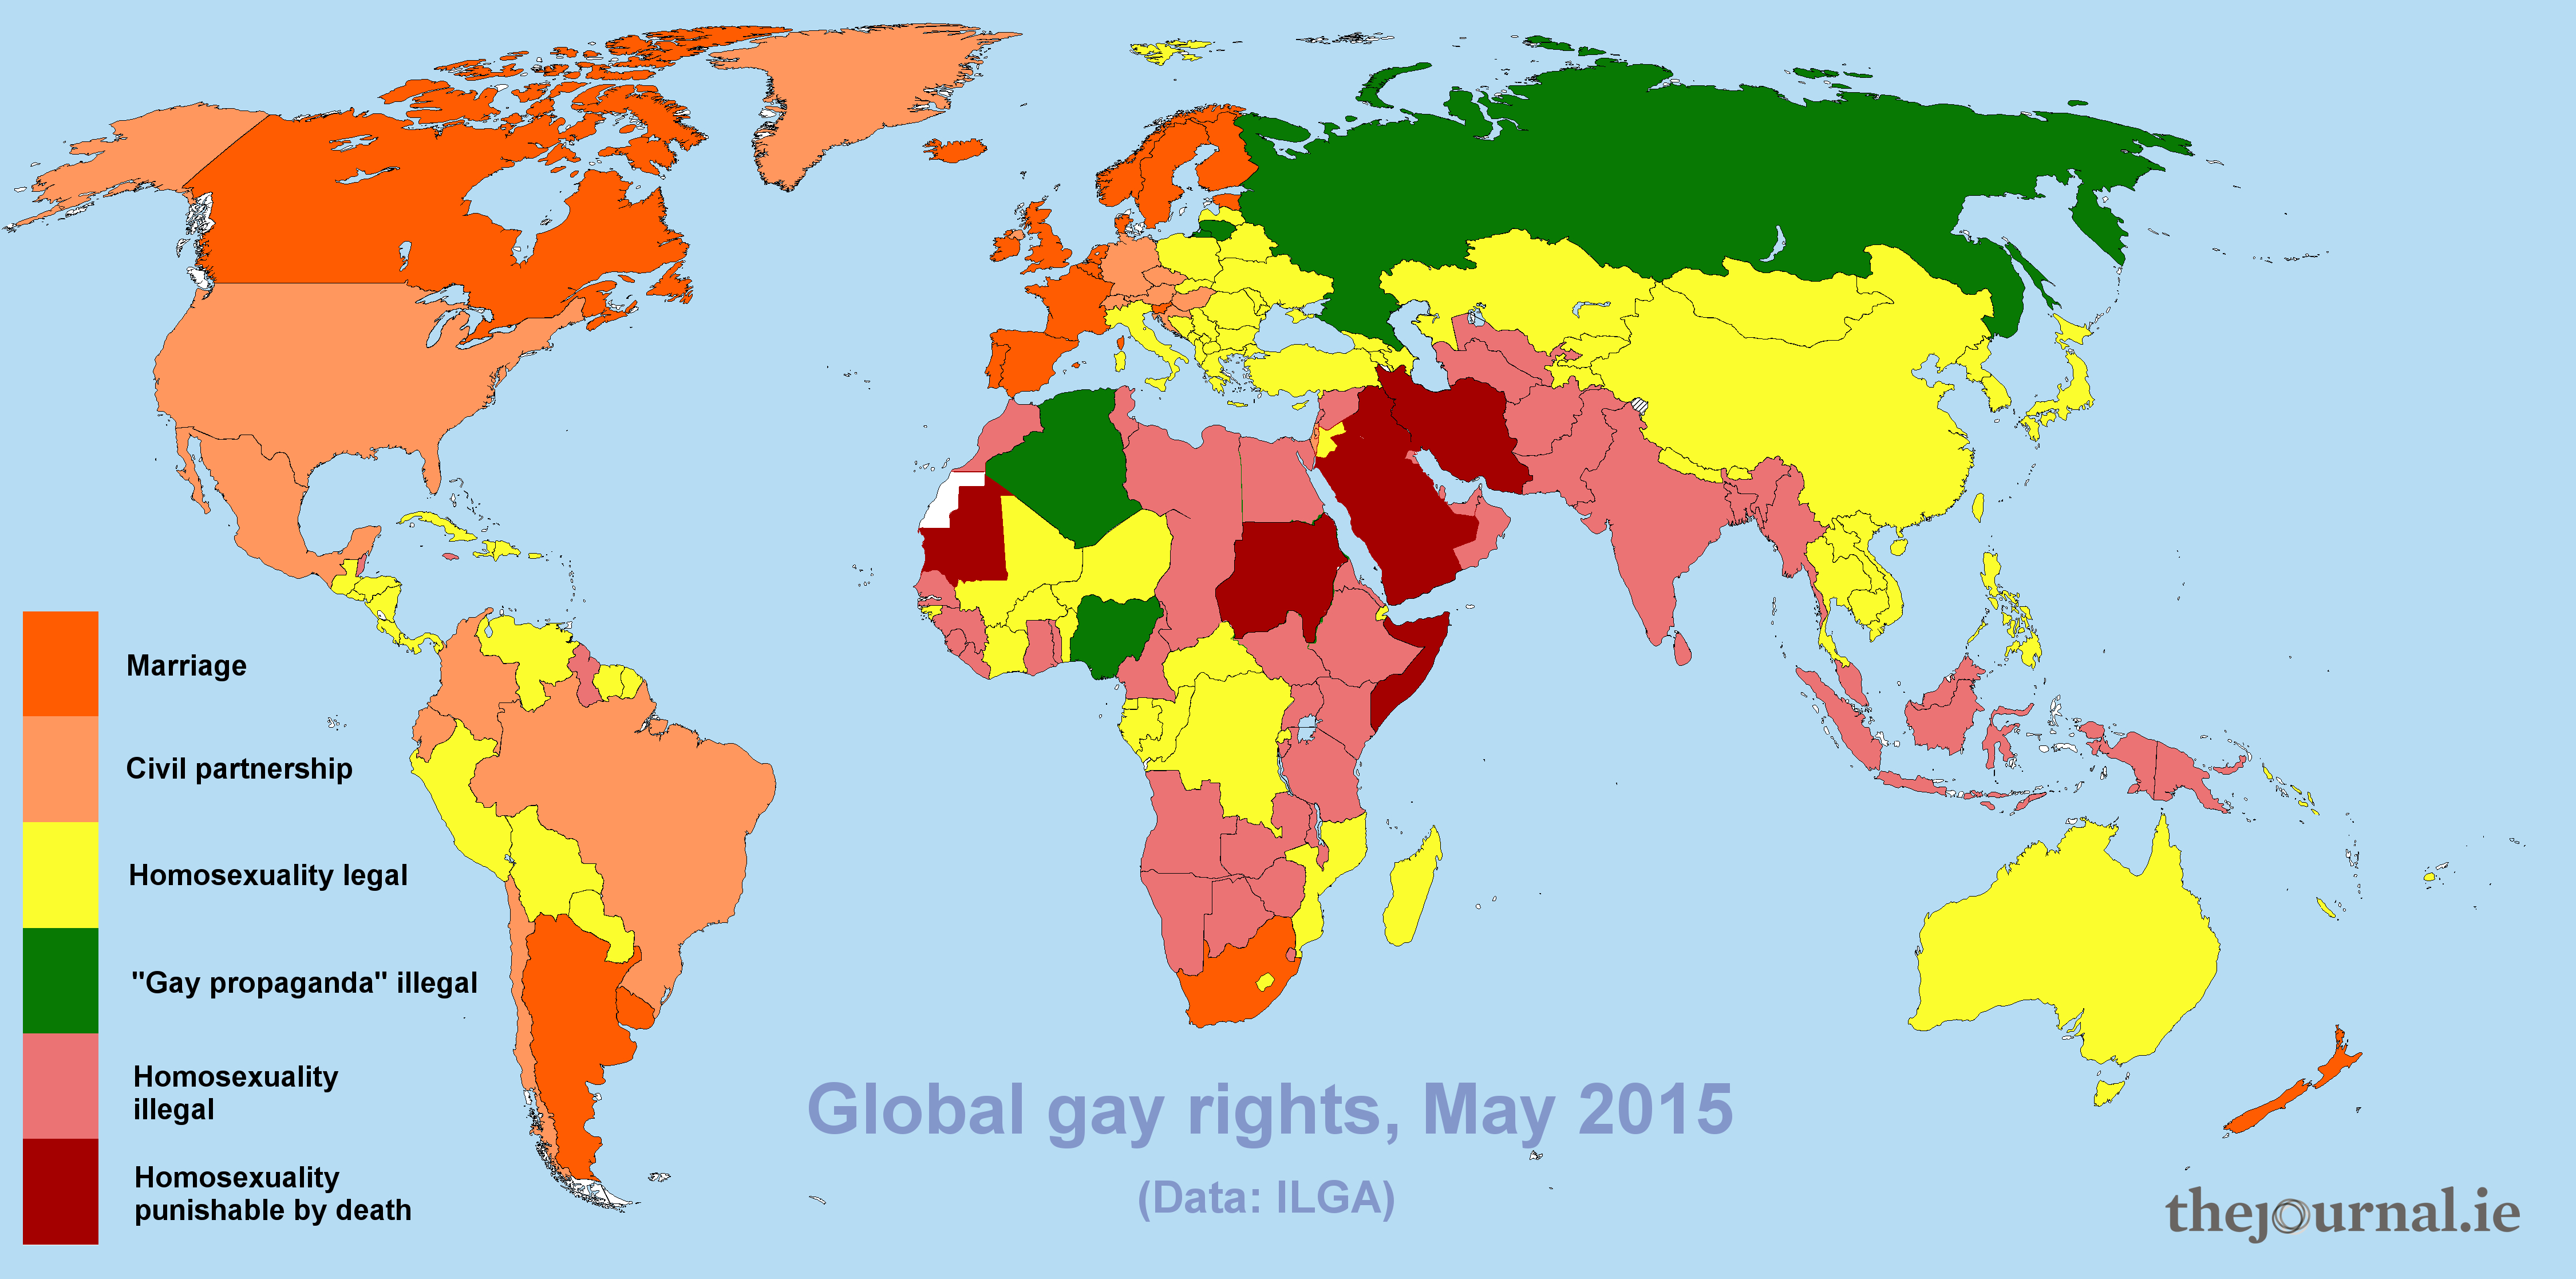 Countries where homosexuality is illegal